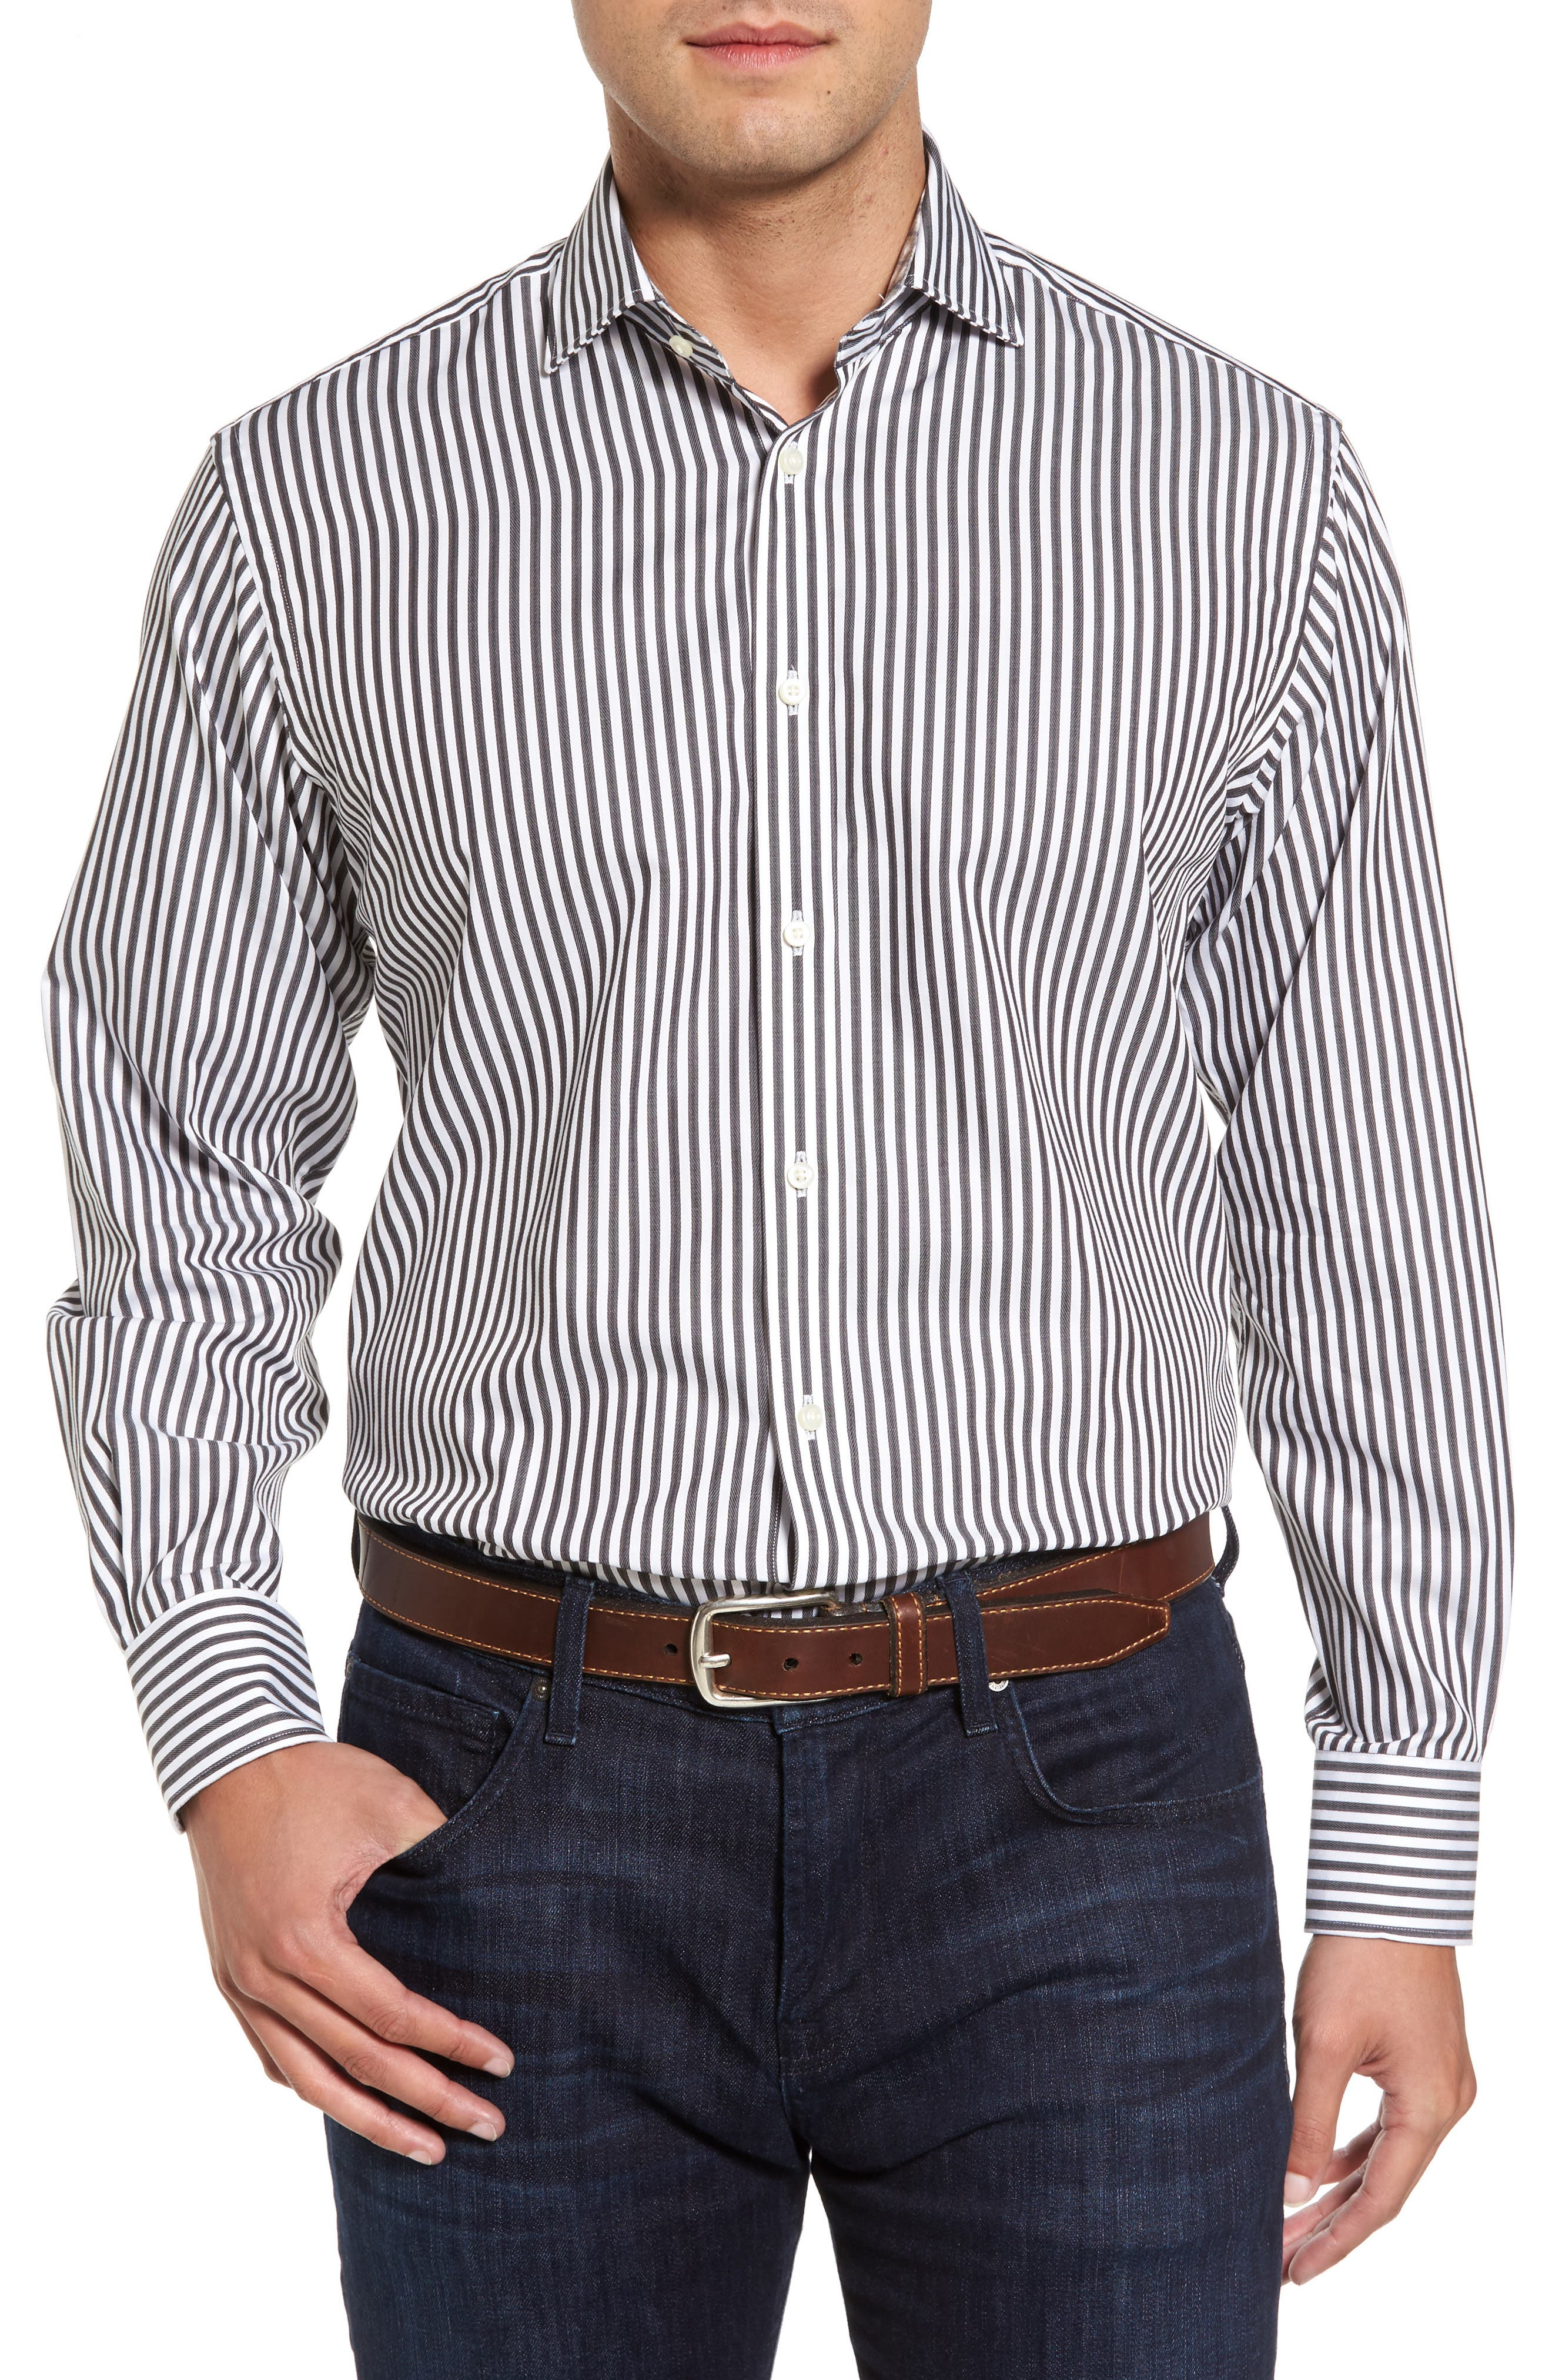 THOMAS DEAN Regular Fit Stripe Herringbone Sport Shirt, Main, color, 021